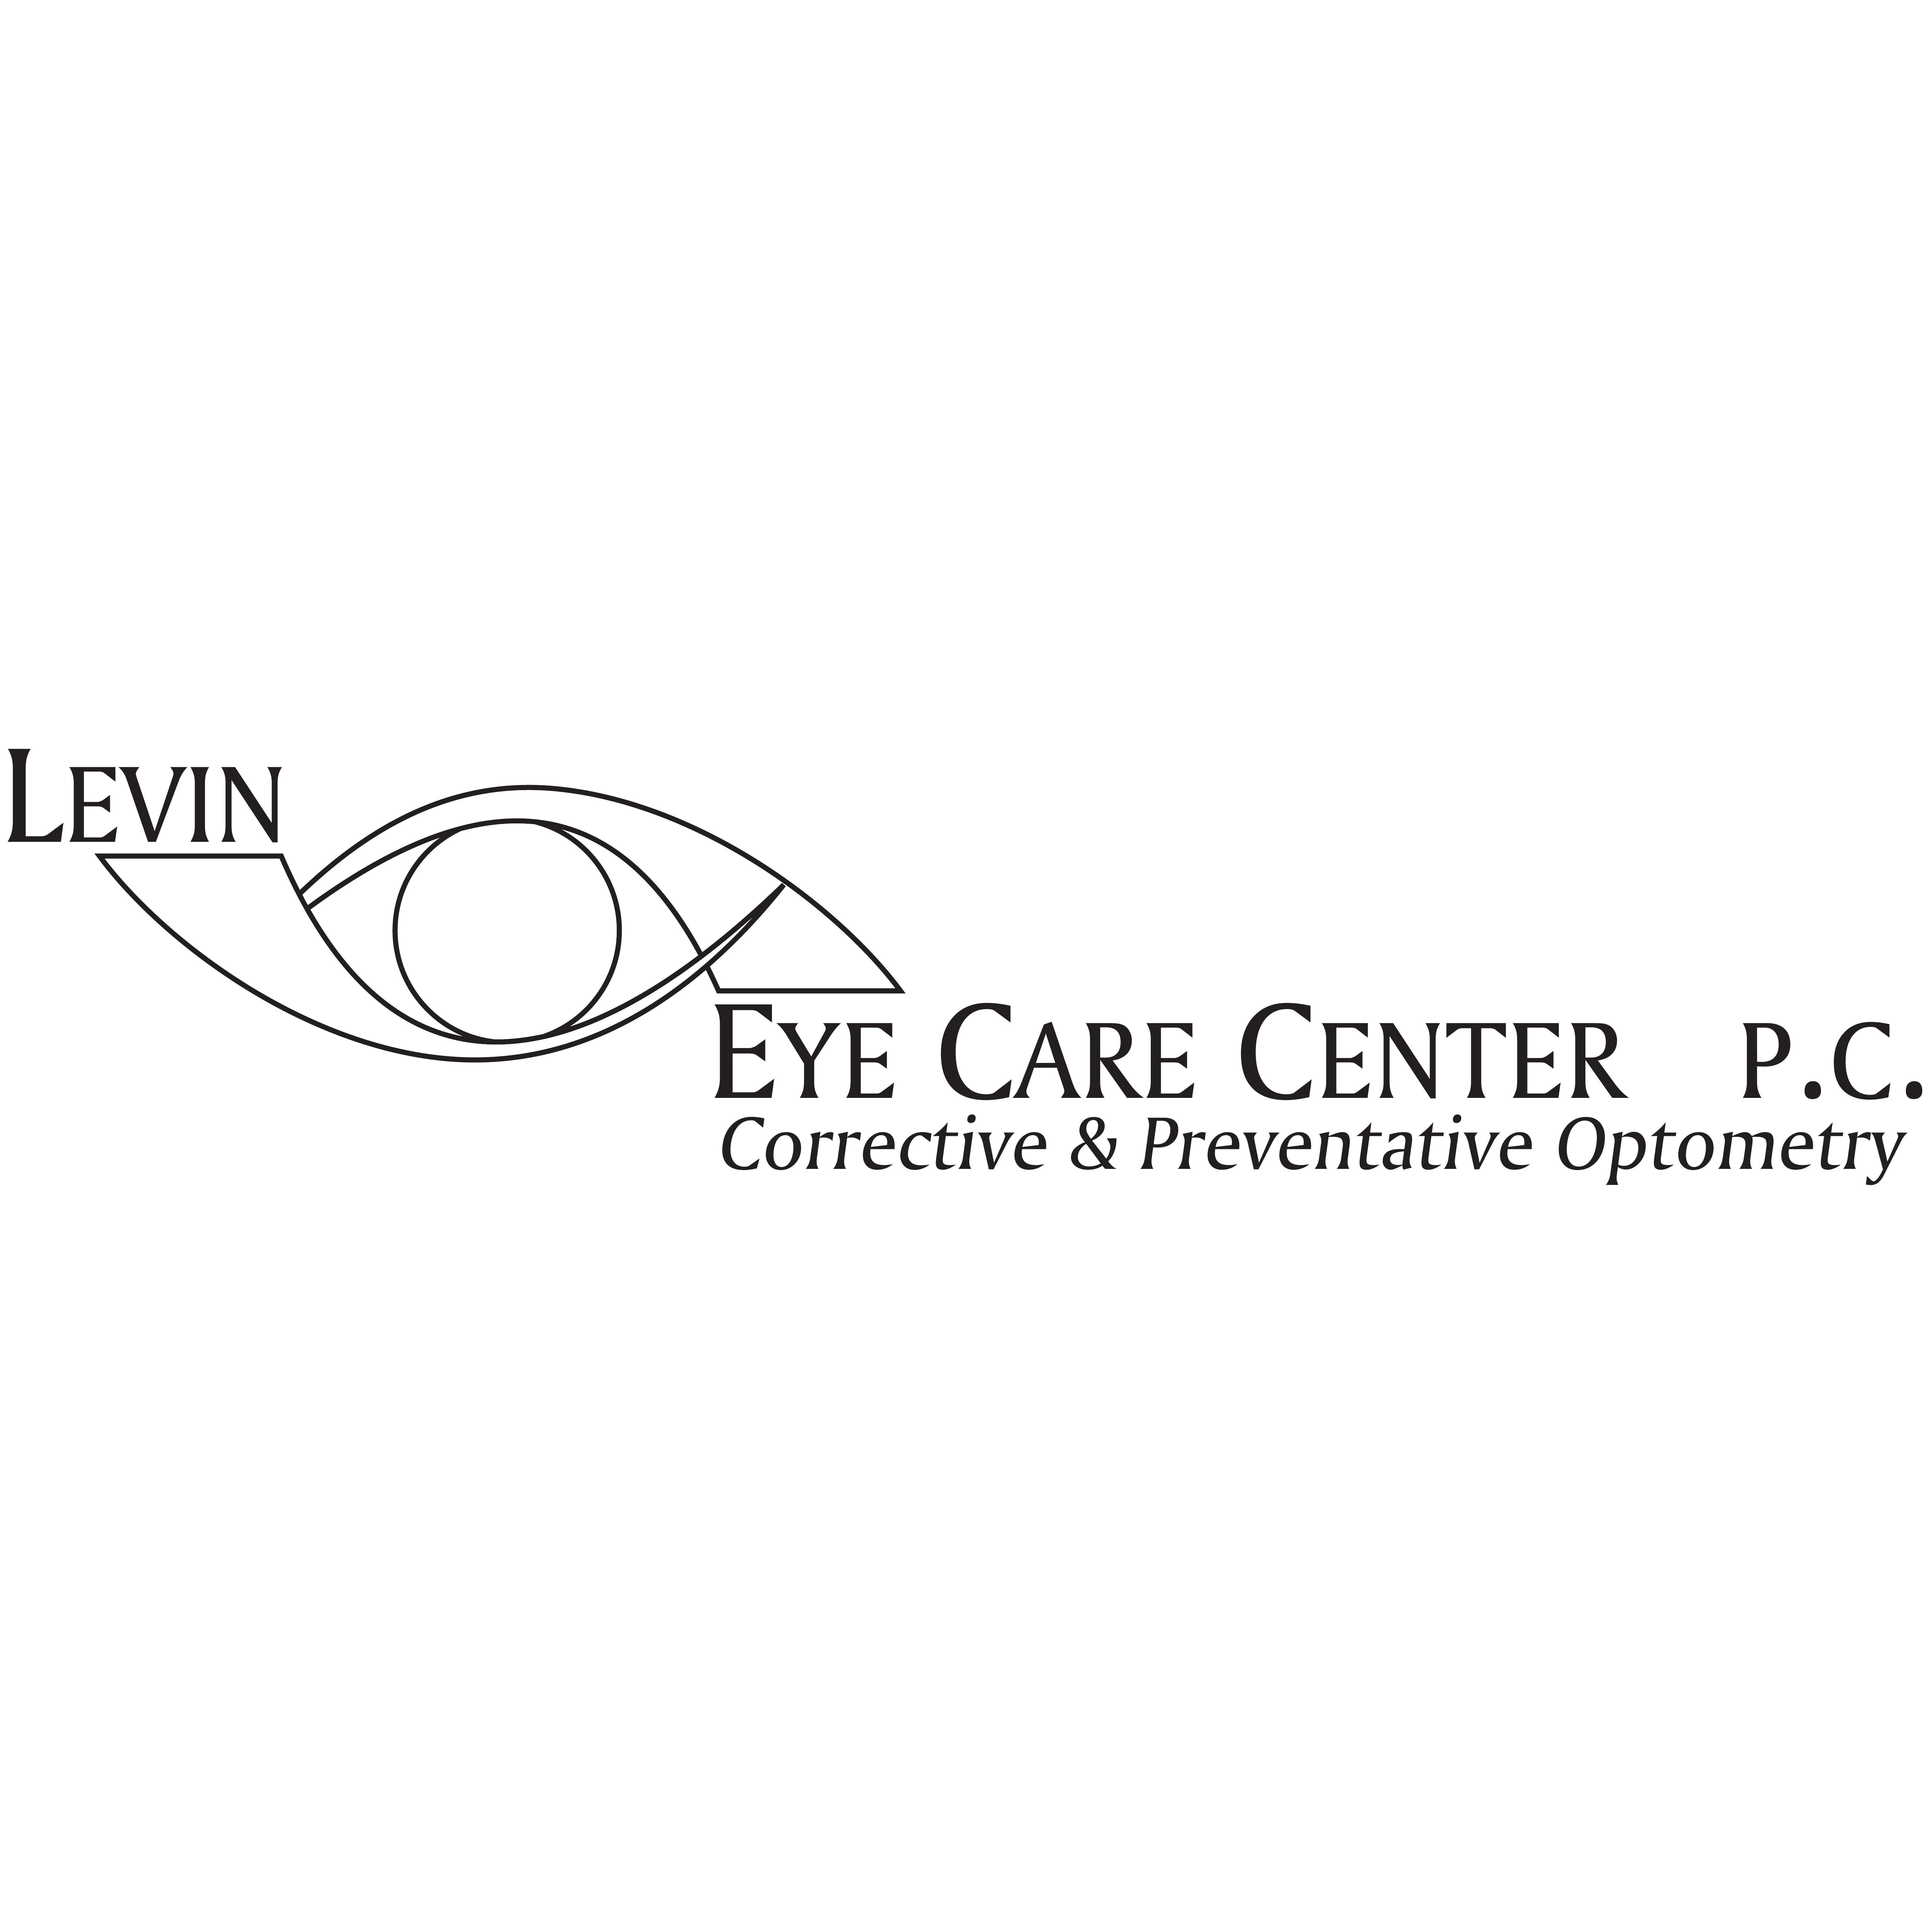 Levin Eye Care Center - Whiting, IN 46394 - (219)659-3050 | ShowMeLocal.com